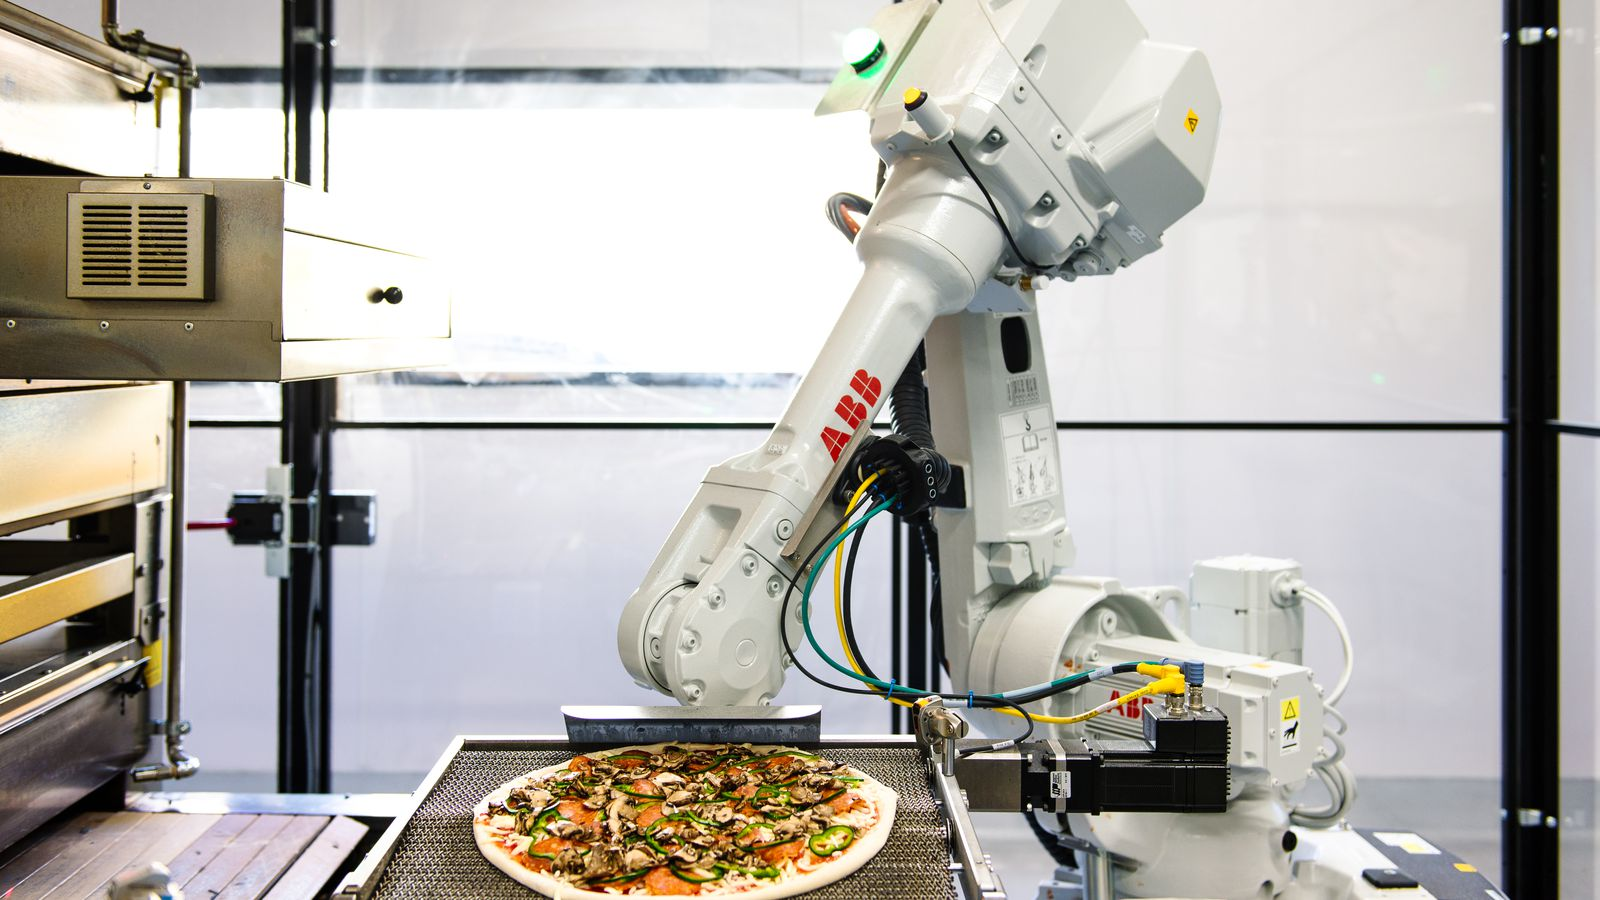 Pizza Made By Robots Baked On The Way To Your House